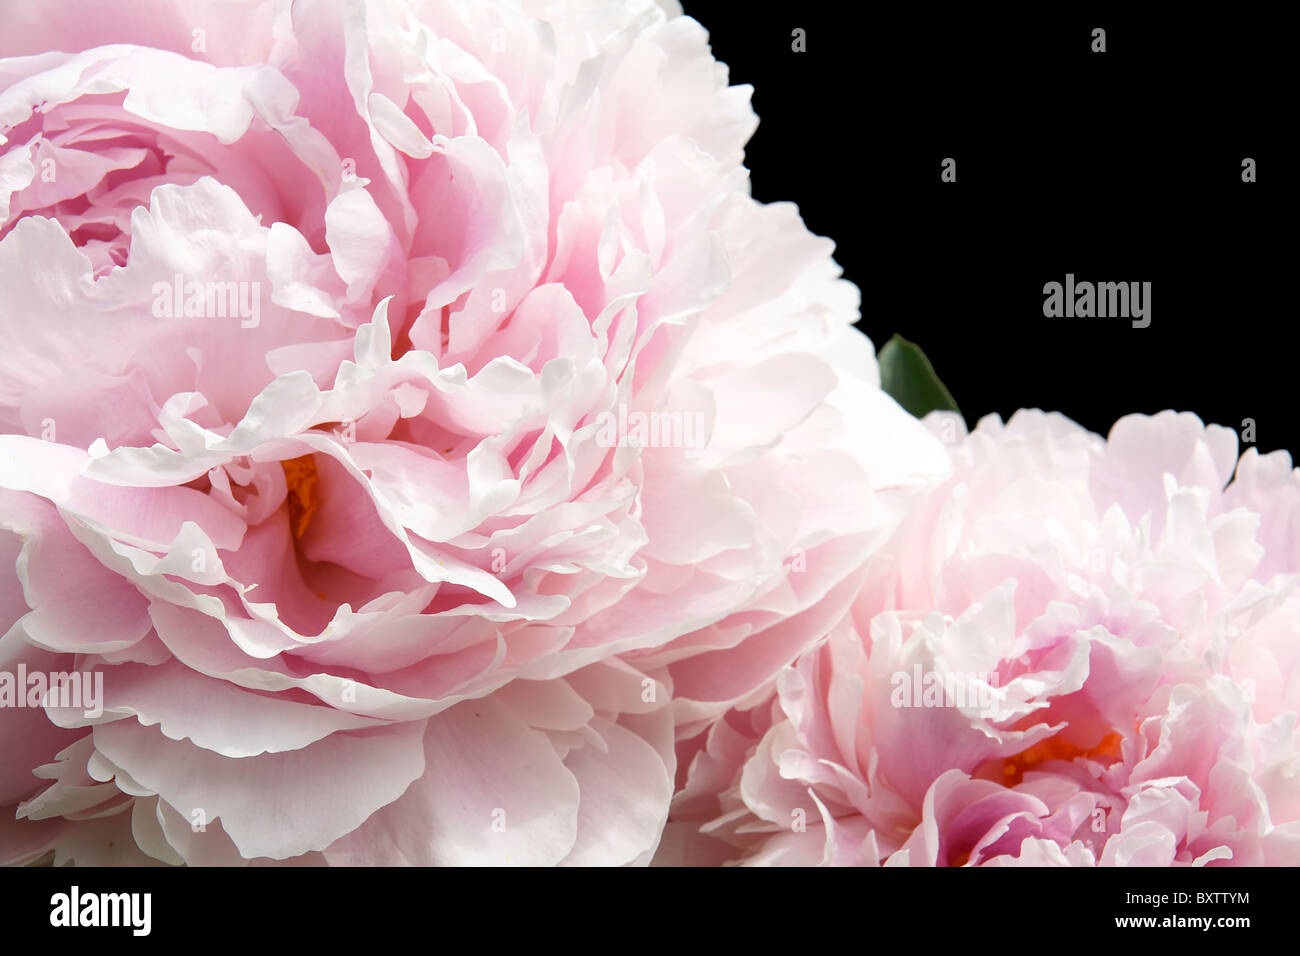 Pale Pink Flowers Peonies Detail Close Up Isolated On Black Great